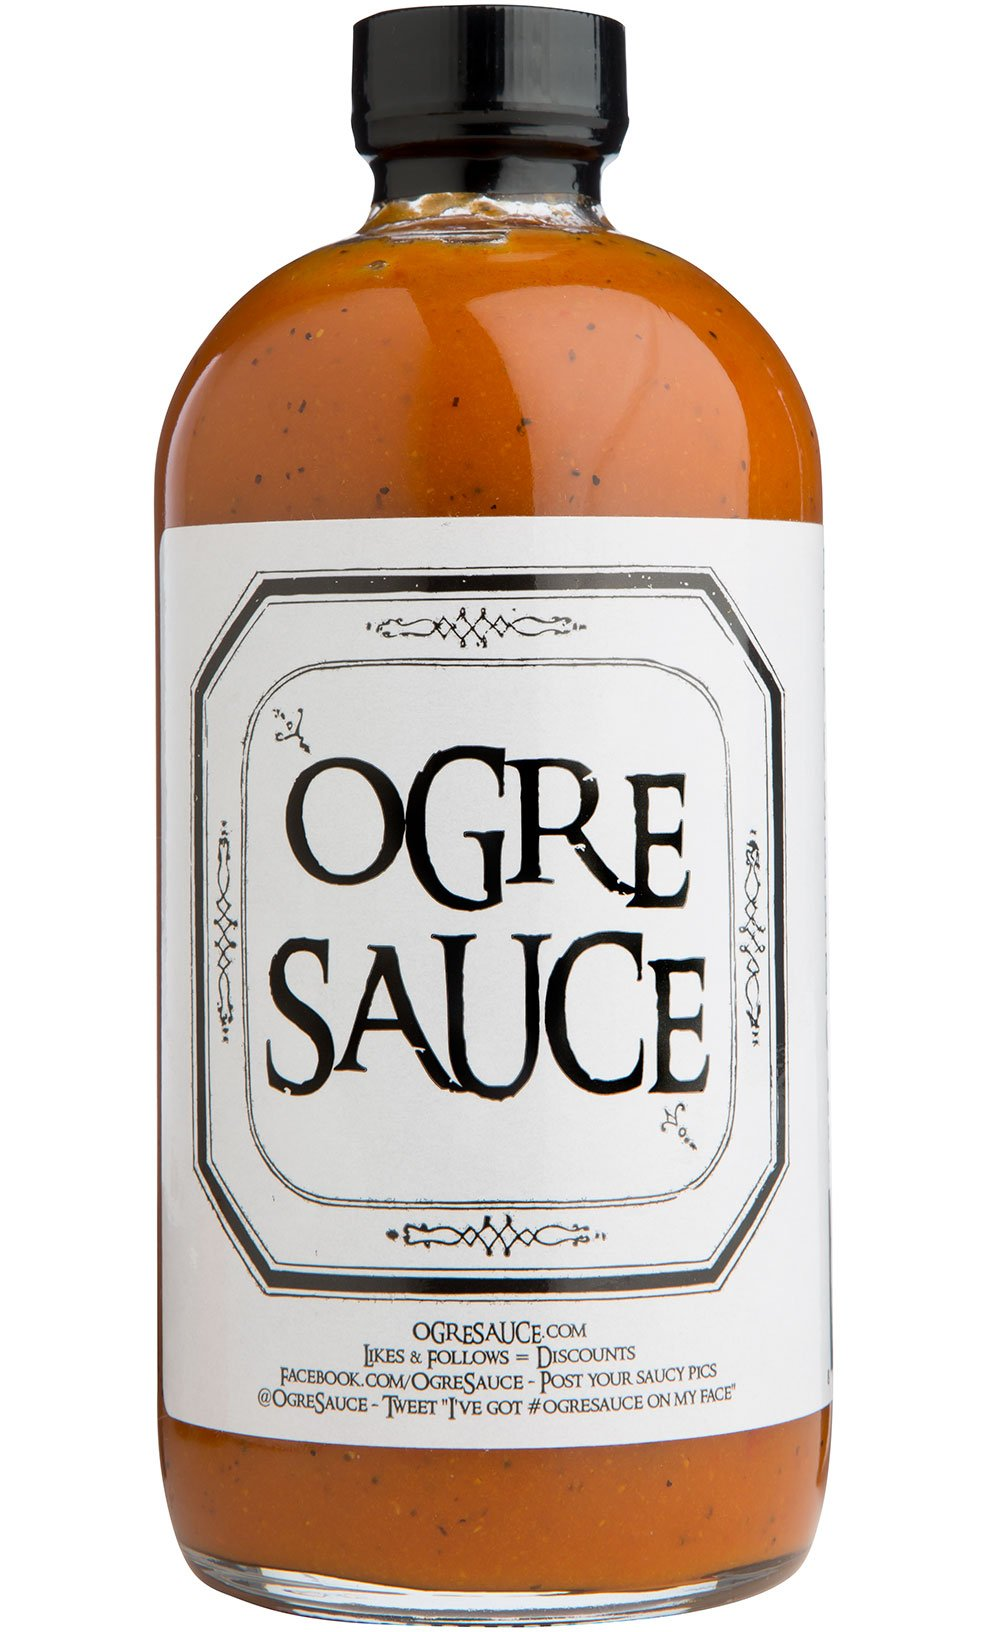 BBQ sauce - Ogre Sauce - All-Purpose Craft Barbecue Sauce - Award Winning BBQ Sauce - Grilling Sauce - Smoking Sauce - BBQ Sauce Gift Sets - Rib Sauce - Best BBQ Sauce - Carolina BBQ Sauce